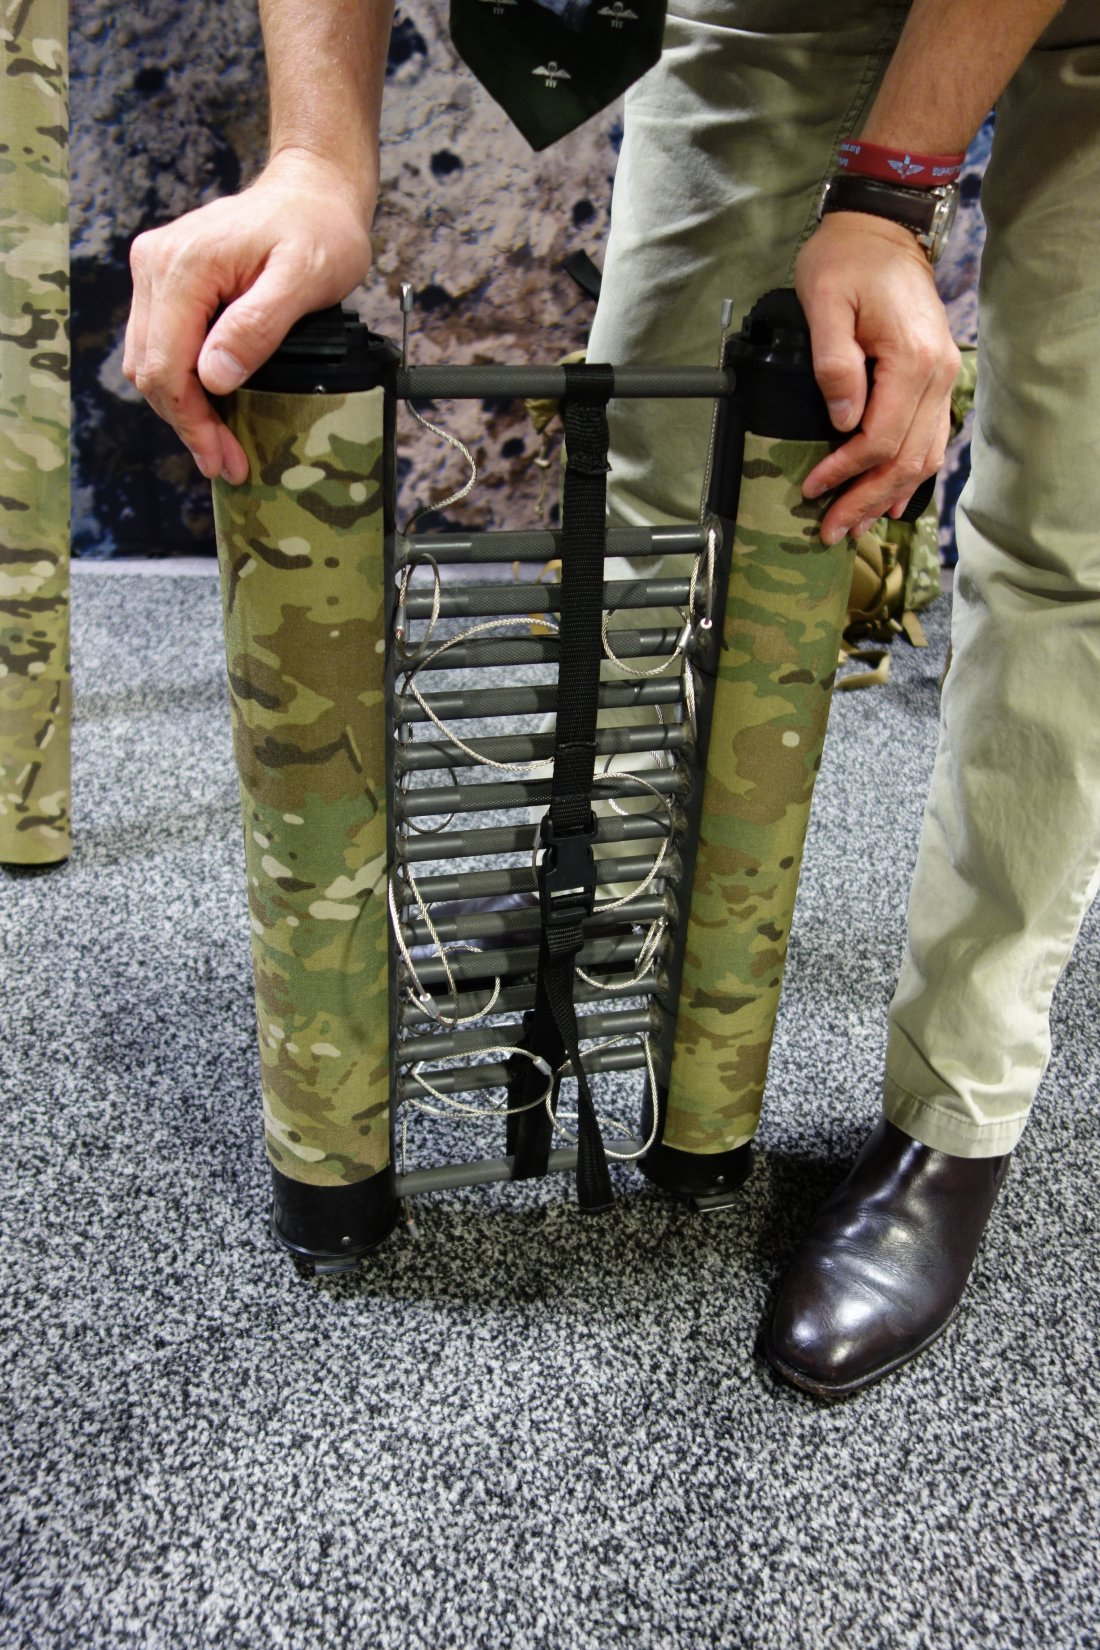 Rolatube Technology Extending Technology Lightweight Tubular Tactical Antenna and Lightweight Tubular Tactical Ladder Combat Ladder Will Pike SOFIC 2013 David Crane DefenseReview.com DR 9 Rolatube Technology Extendable/Collapsible Lightweight Tubular Tactical Ladder and Tactical Antenna Mast for Military Special Operations Forces (SOF) Combat Missions and Maritime Ops (Video!)